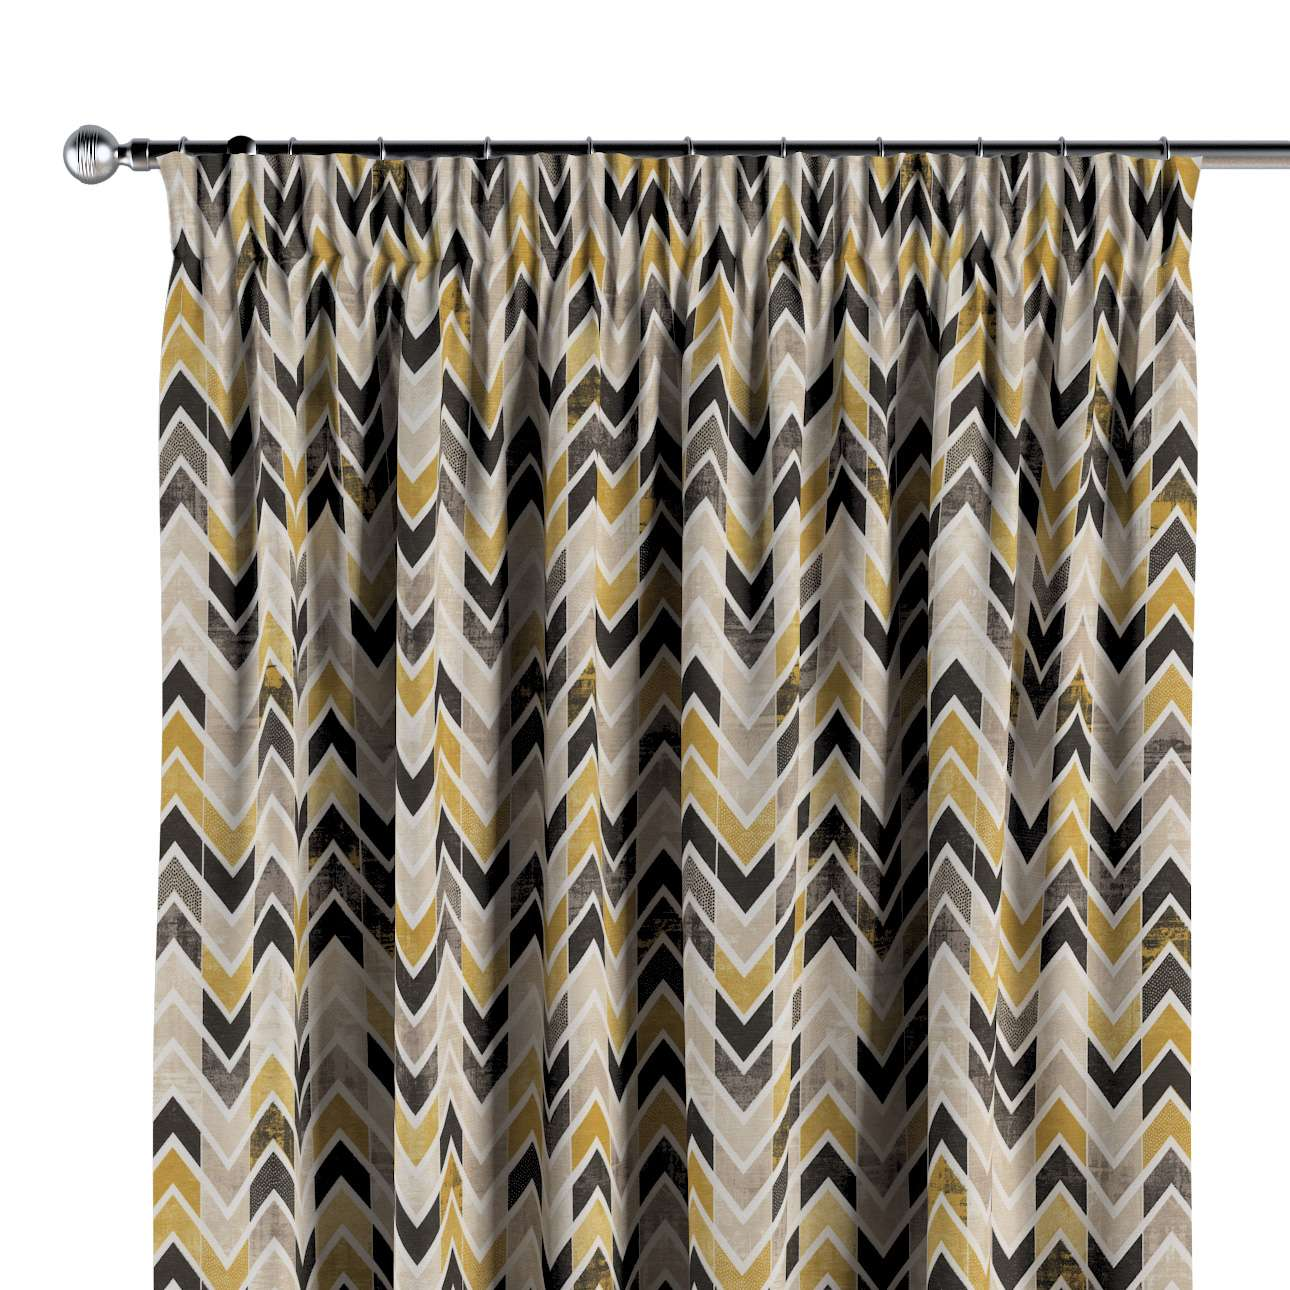 Pencil pleat curtains in collection Modern, fabric: 142-79